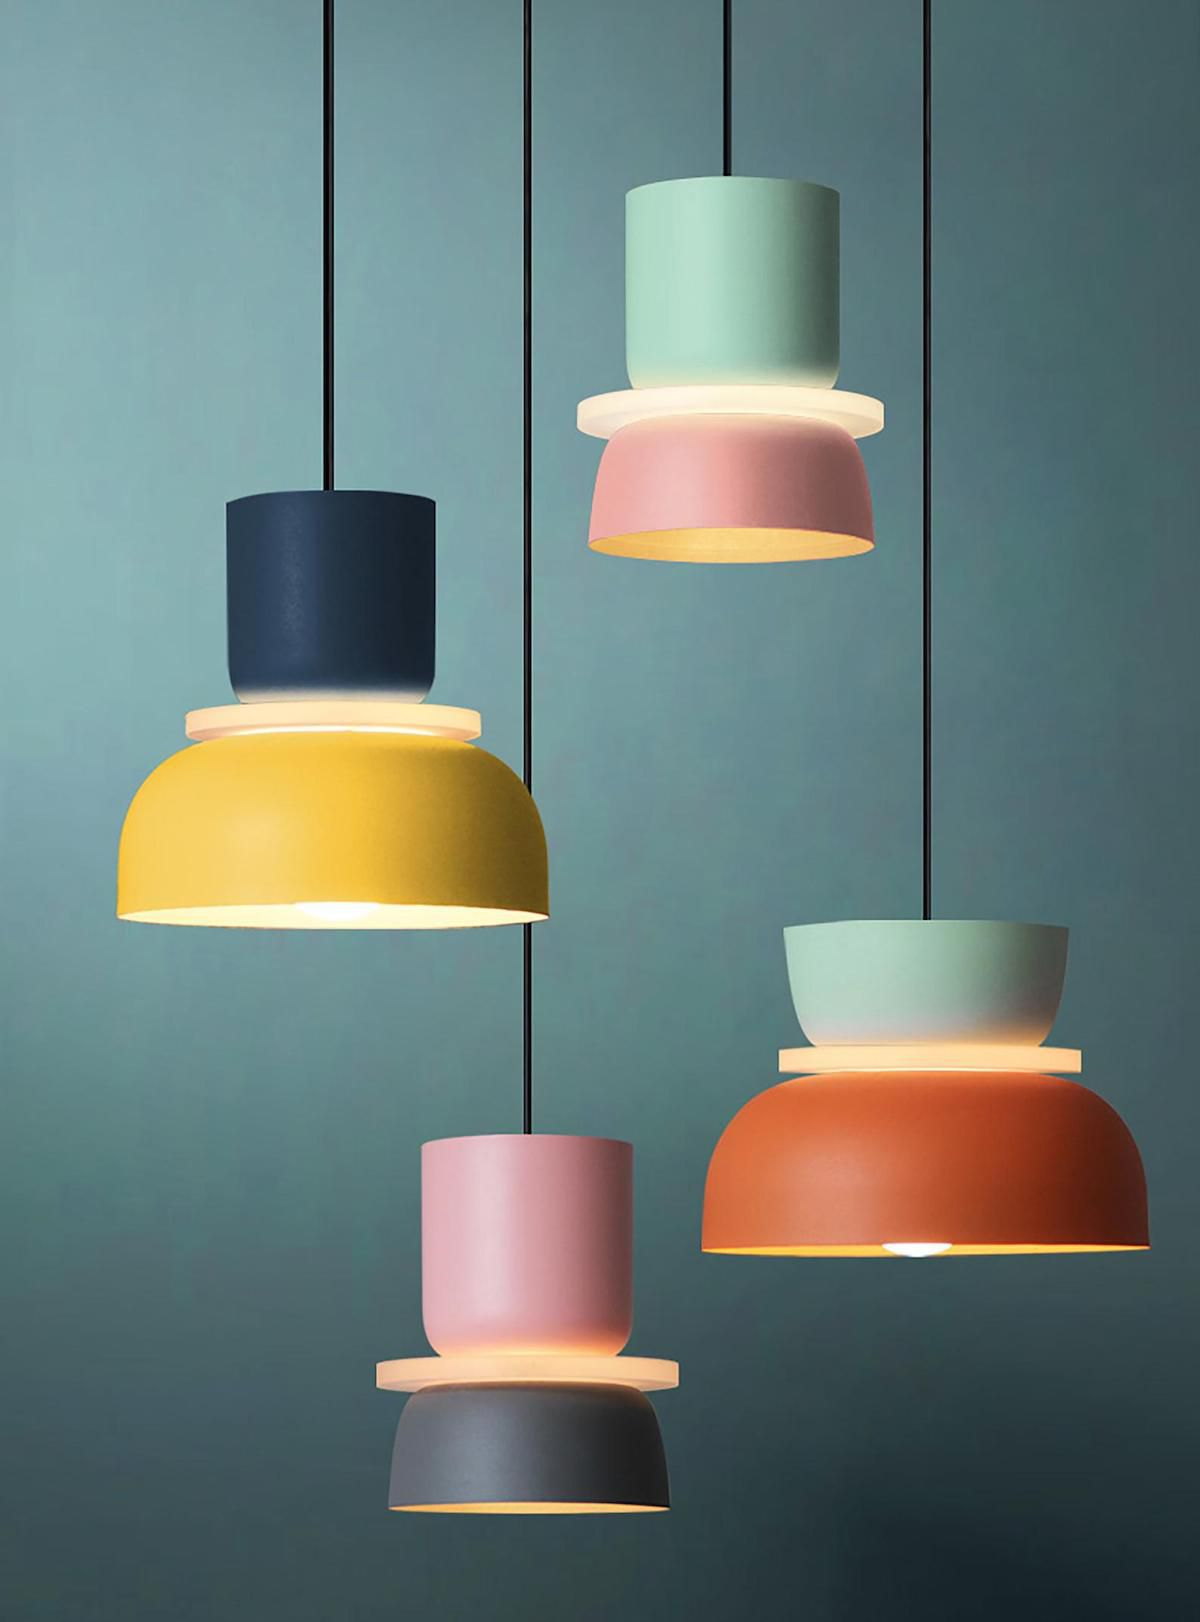 Colorful pendant lights, currently for sale at Etsy